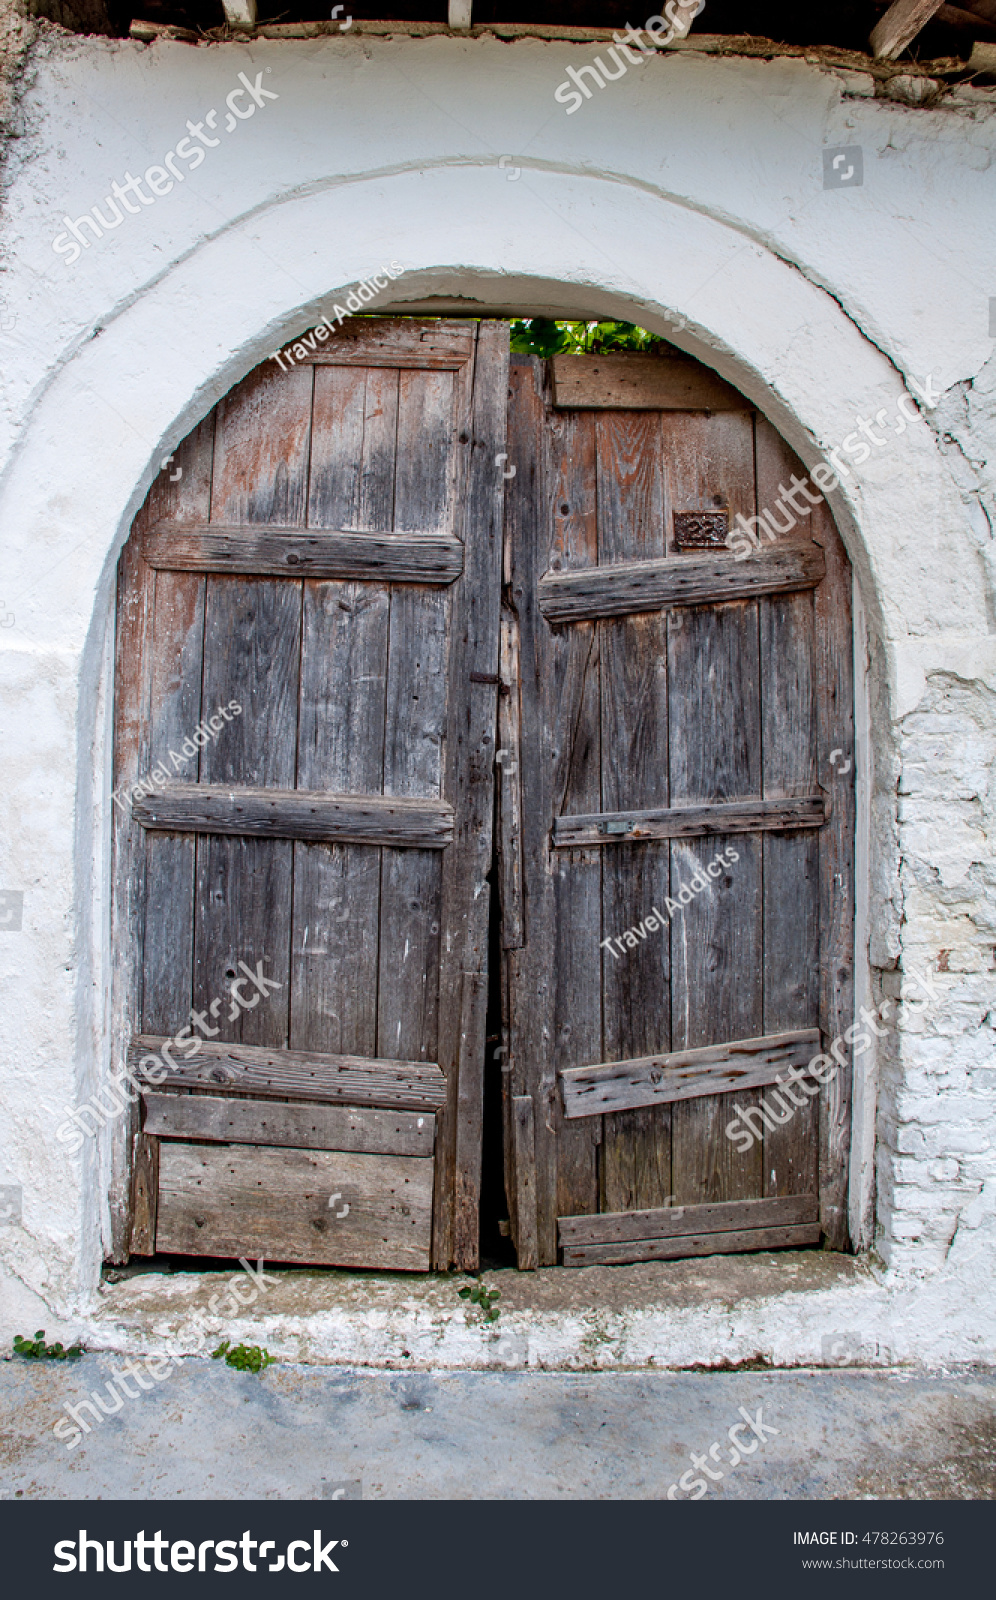 An Old Wooden Door In A Stone Archway. & Stone Door Archways u0026 Large Round-topped Wooden Front Door In ... pezcame.com